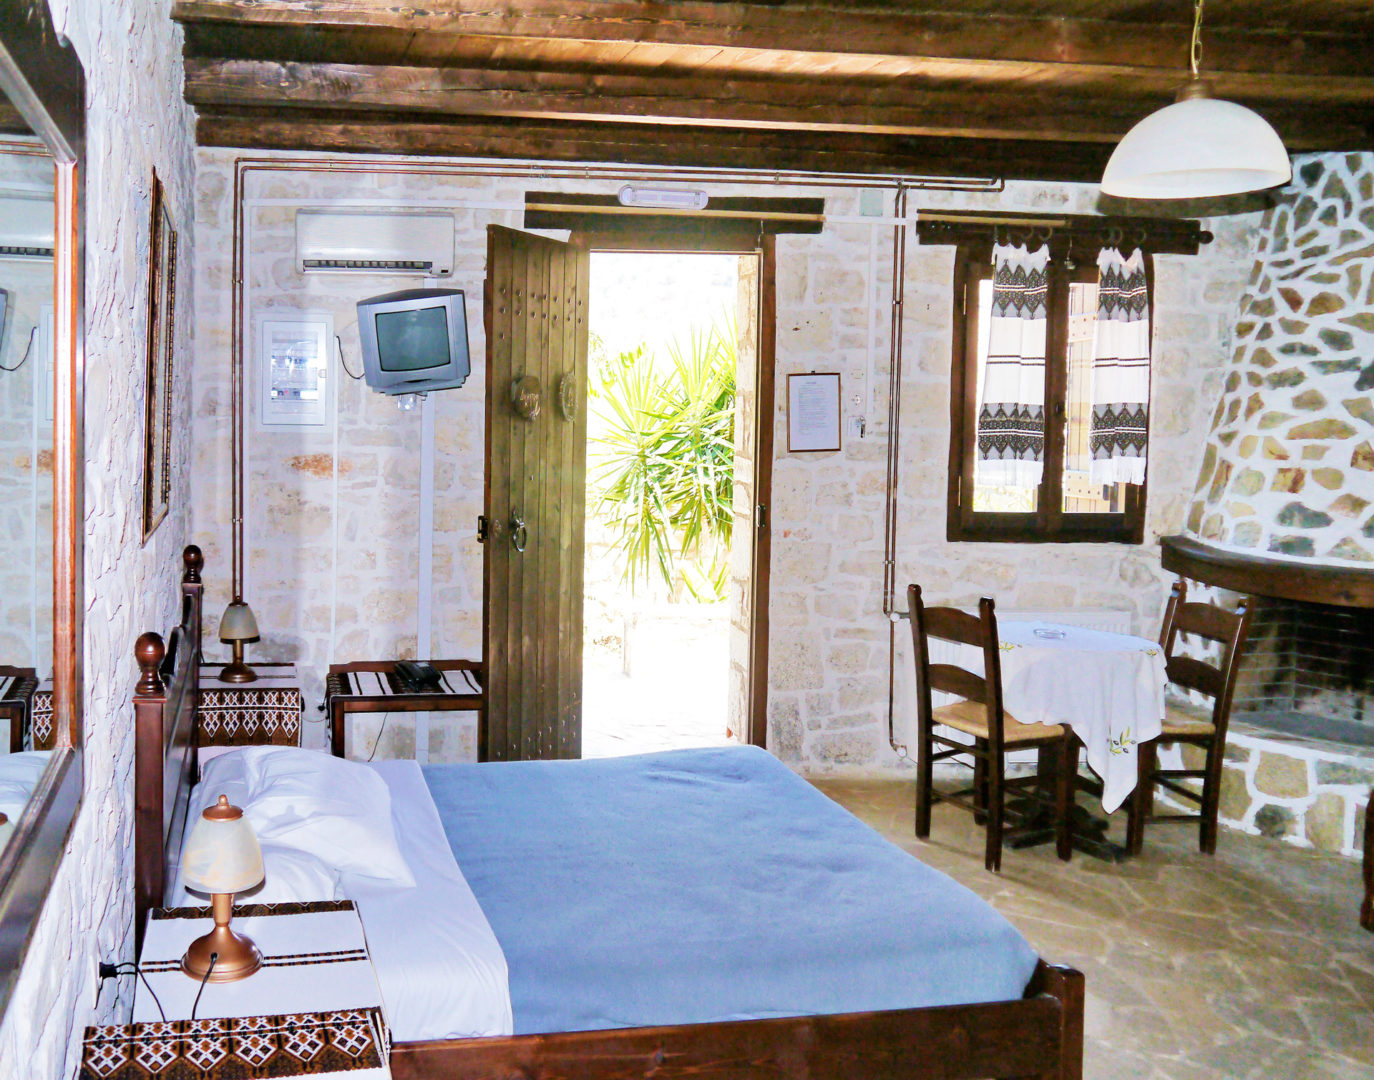 Accommodation in Bali Crete - Studio 2 - Stone Village